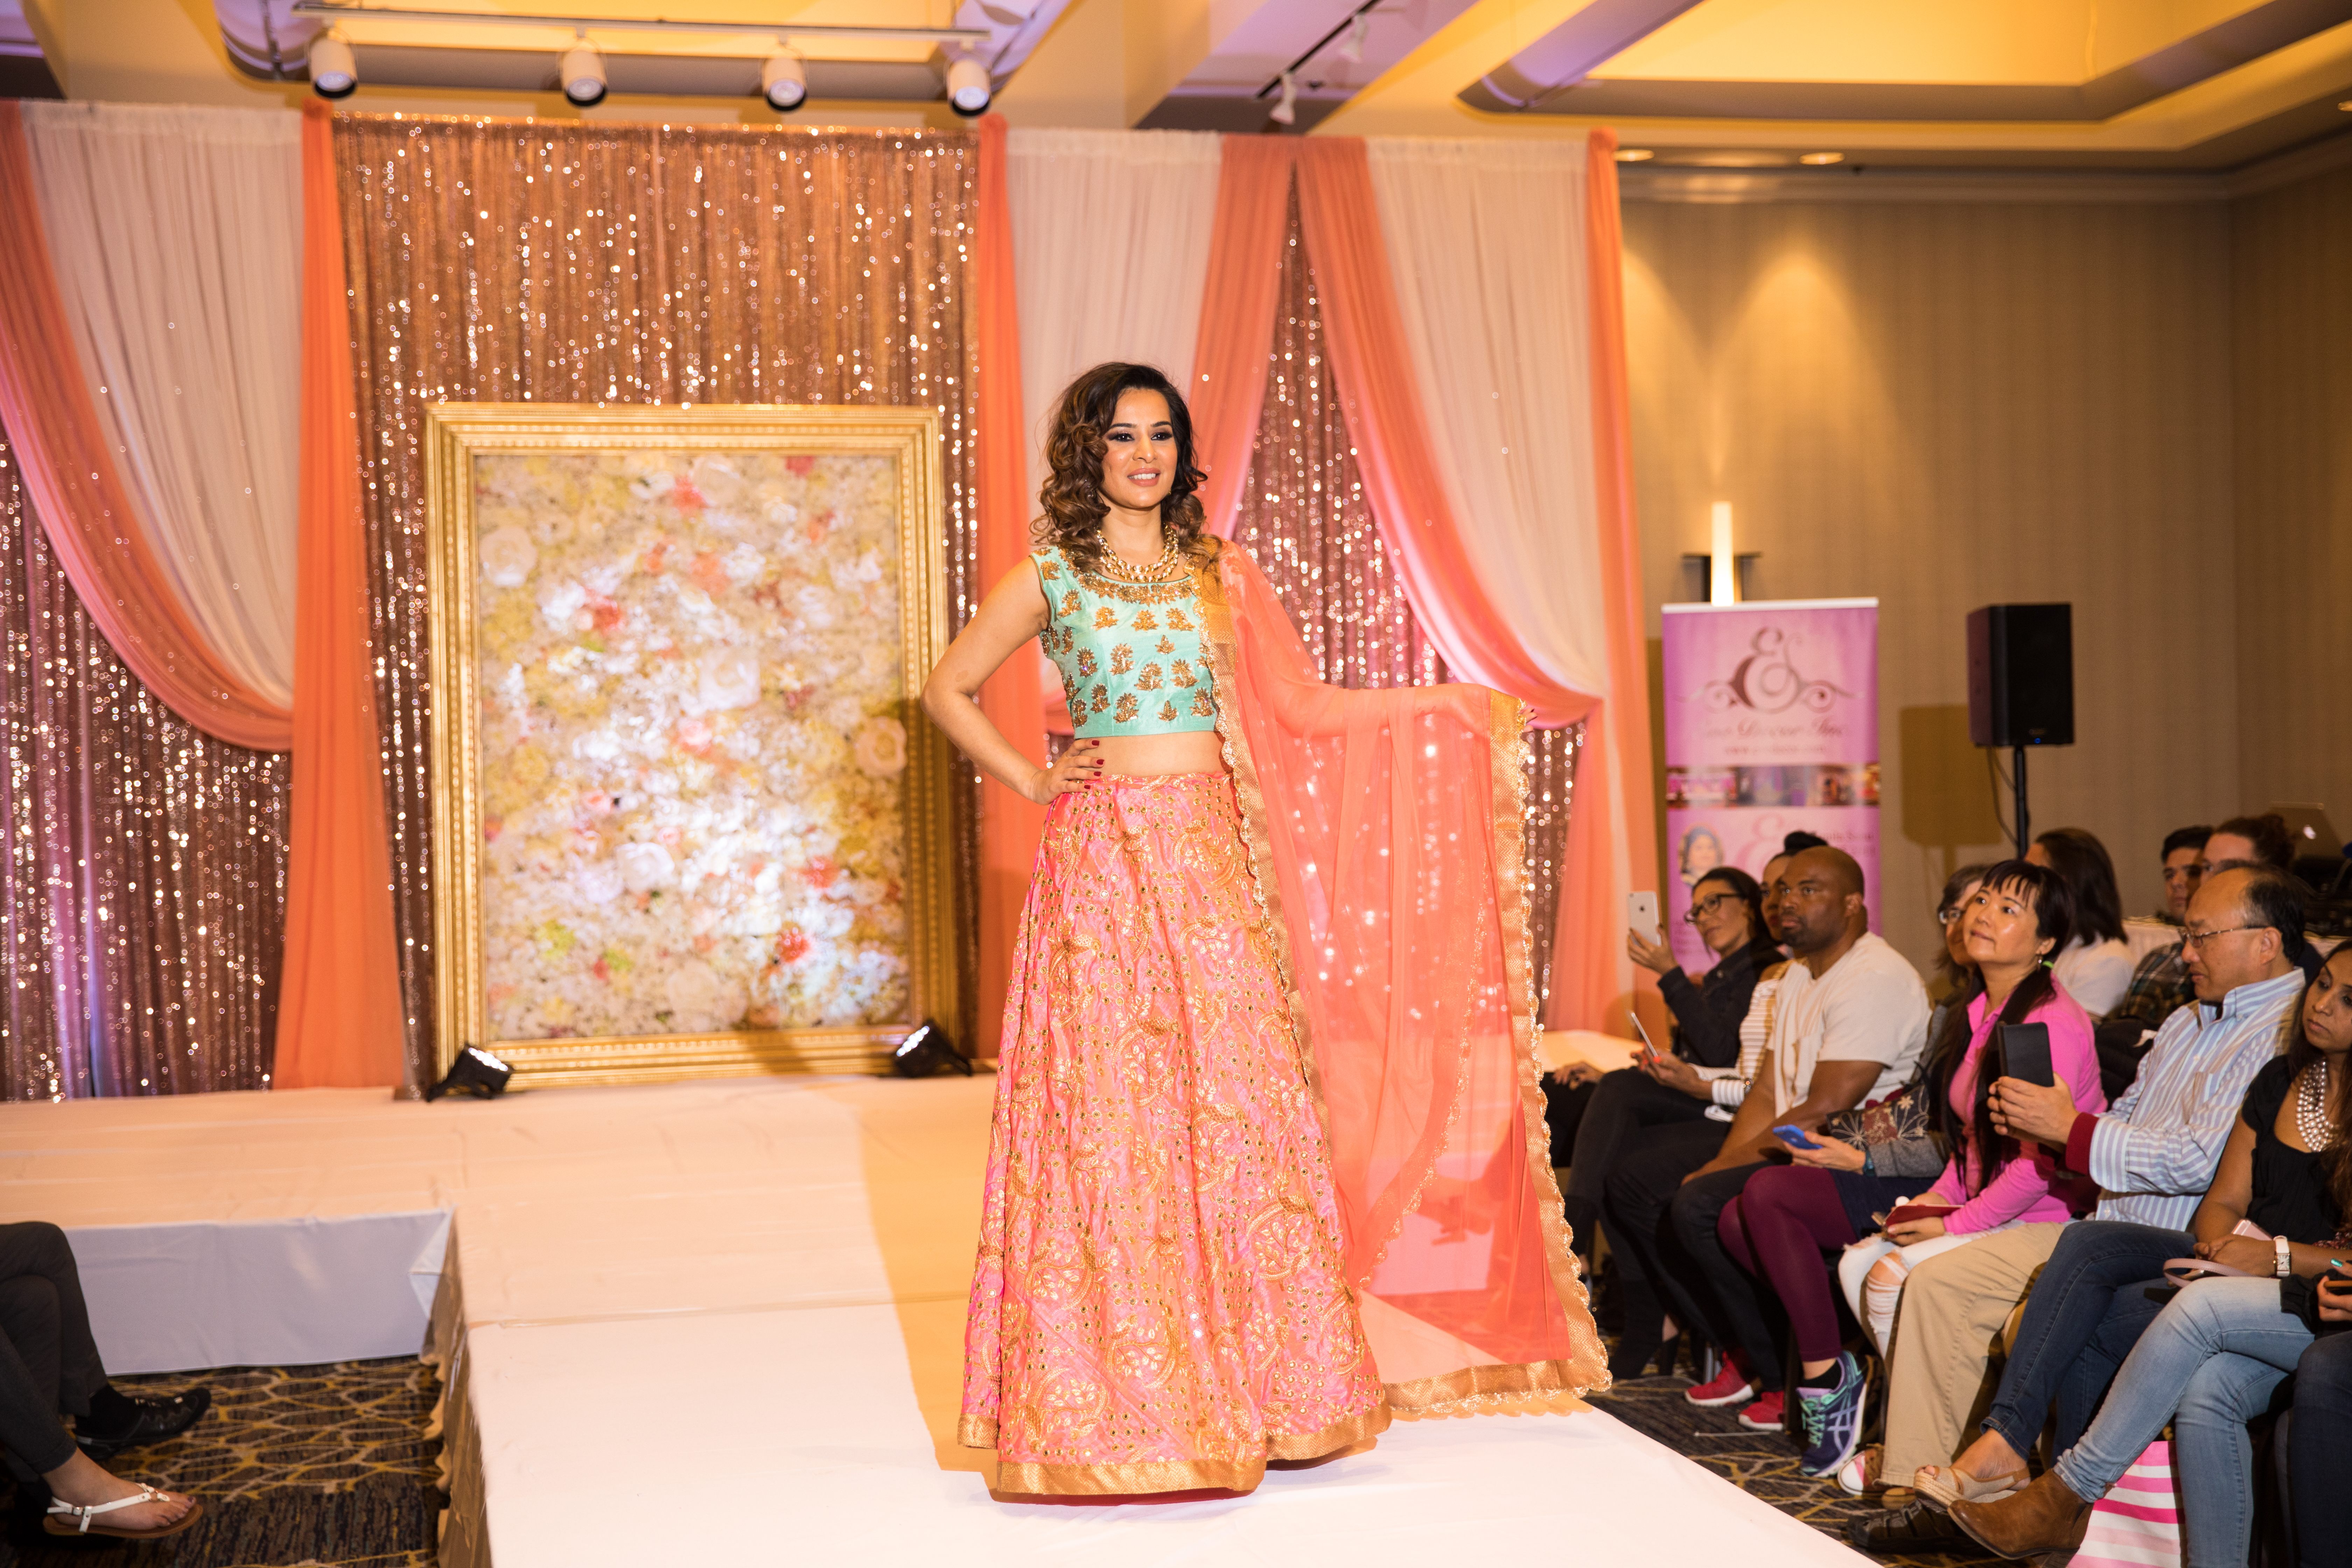 sf-bayarea-indian-wedding-bridal-show-photographer-edcarlogarcia-B35A1881